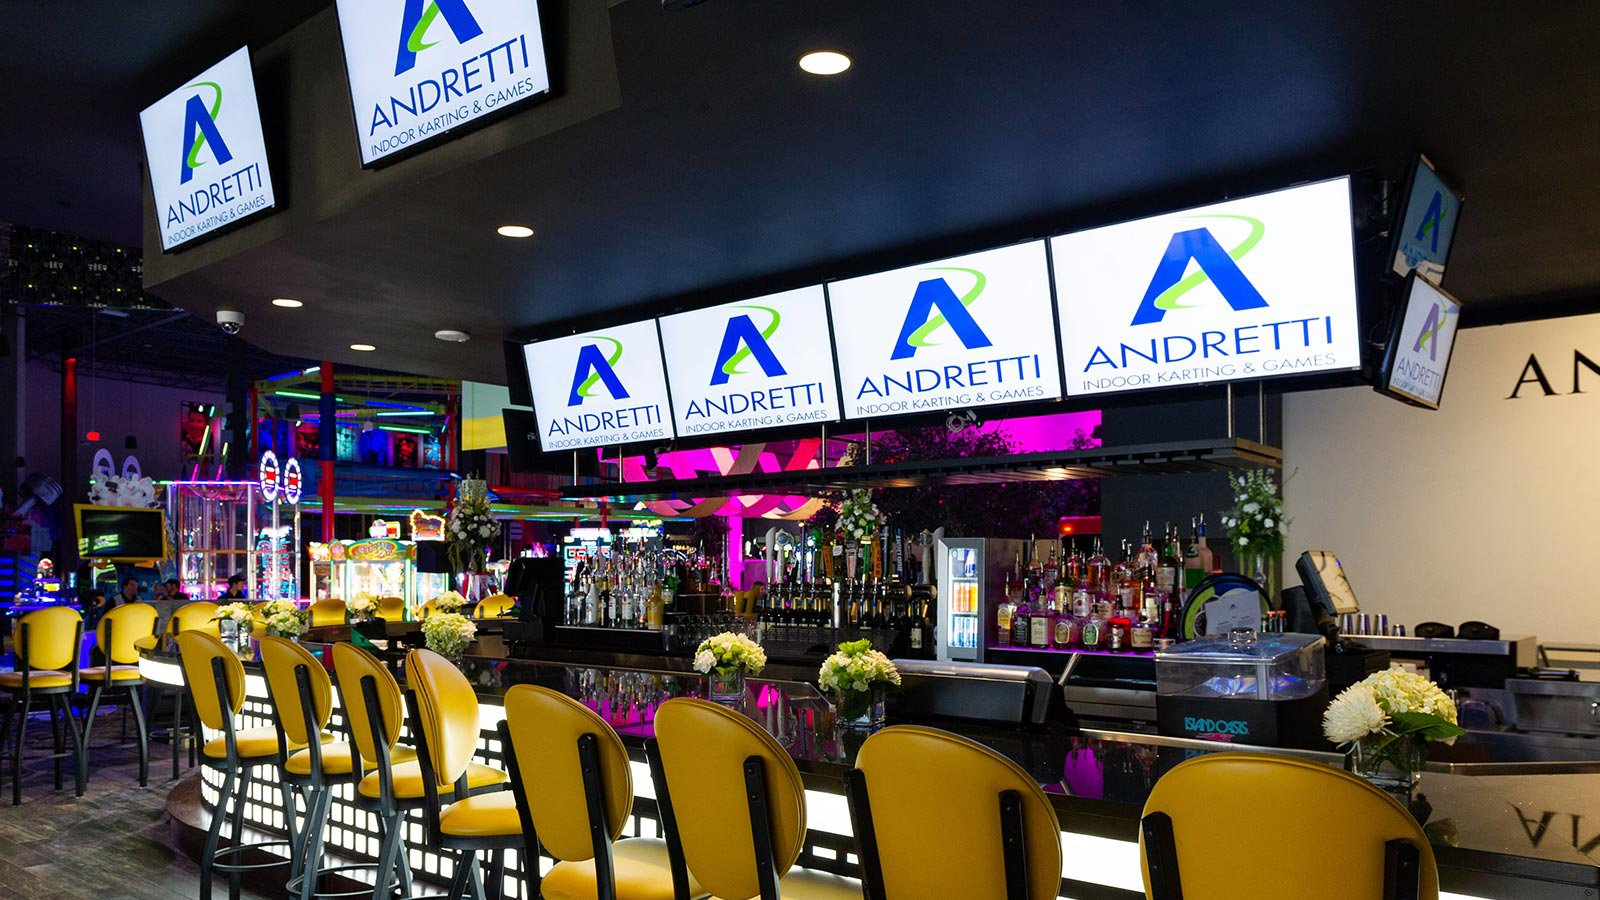 Andretti Indoor Go Karting facility bar area with several television displays. (background)